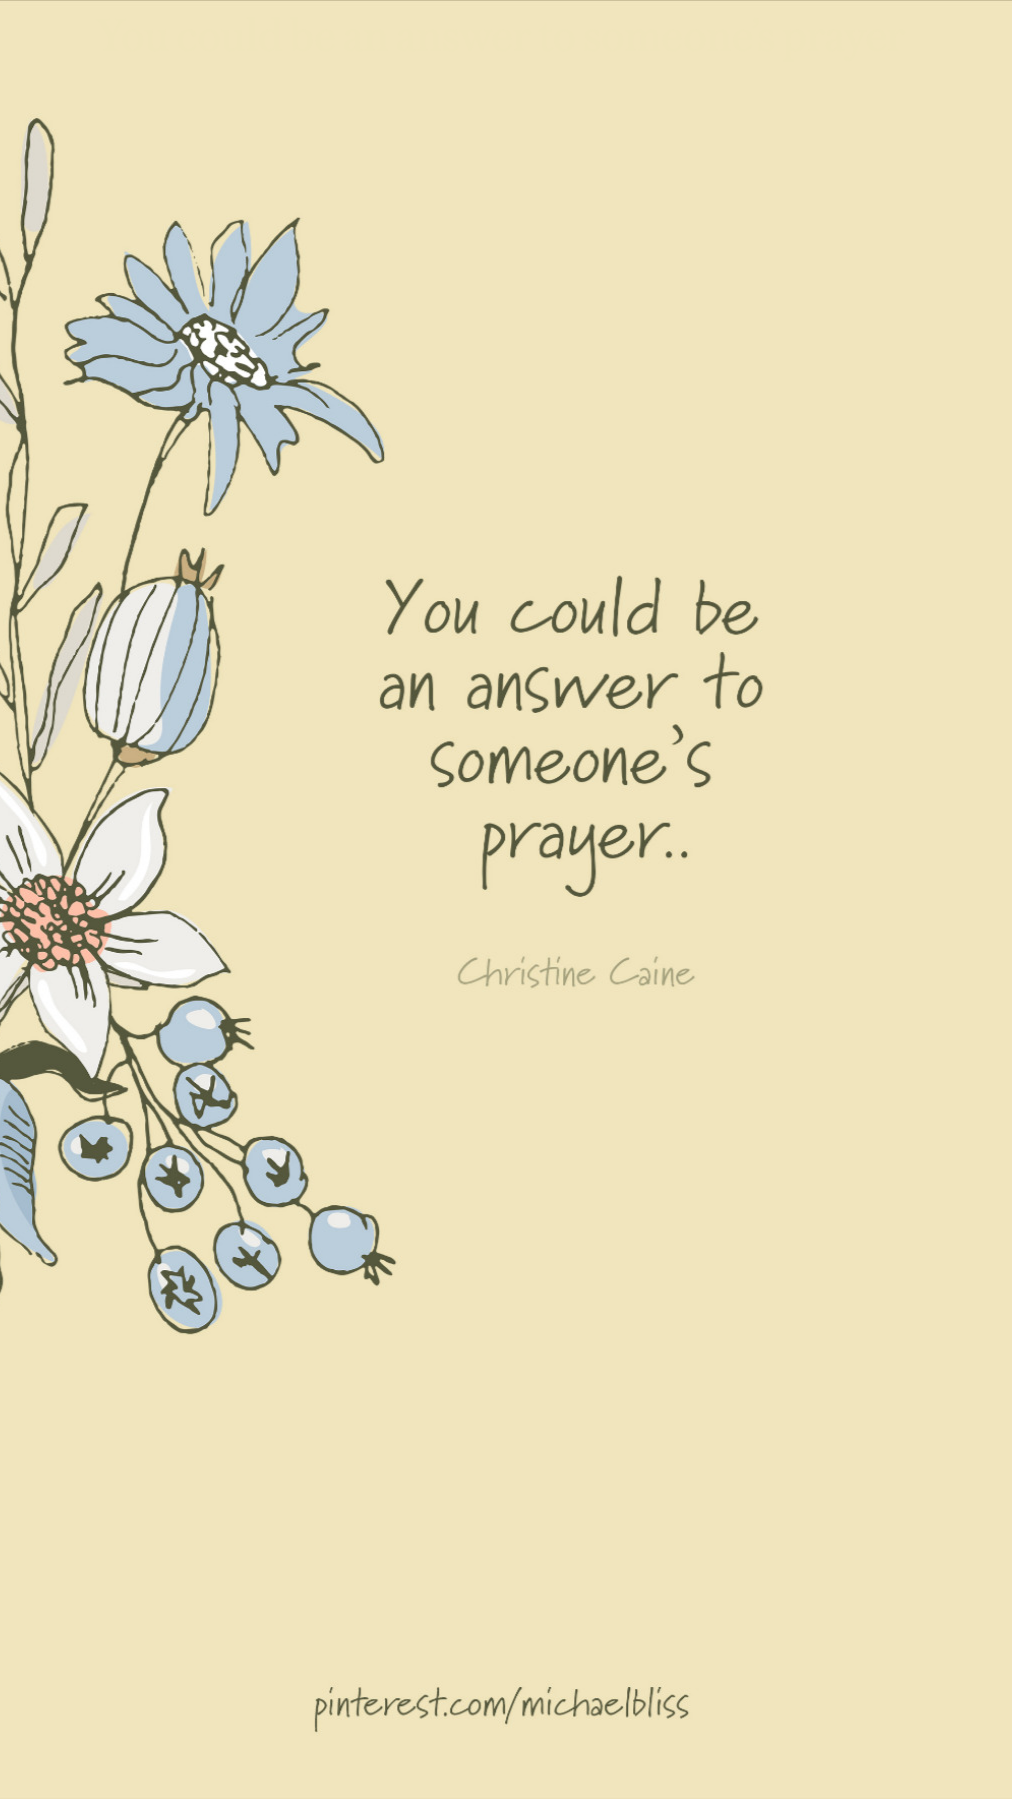 You could be an answer to someone's prayer